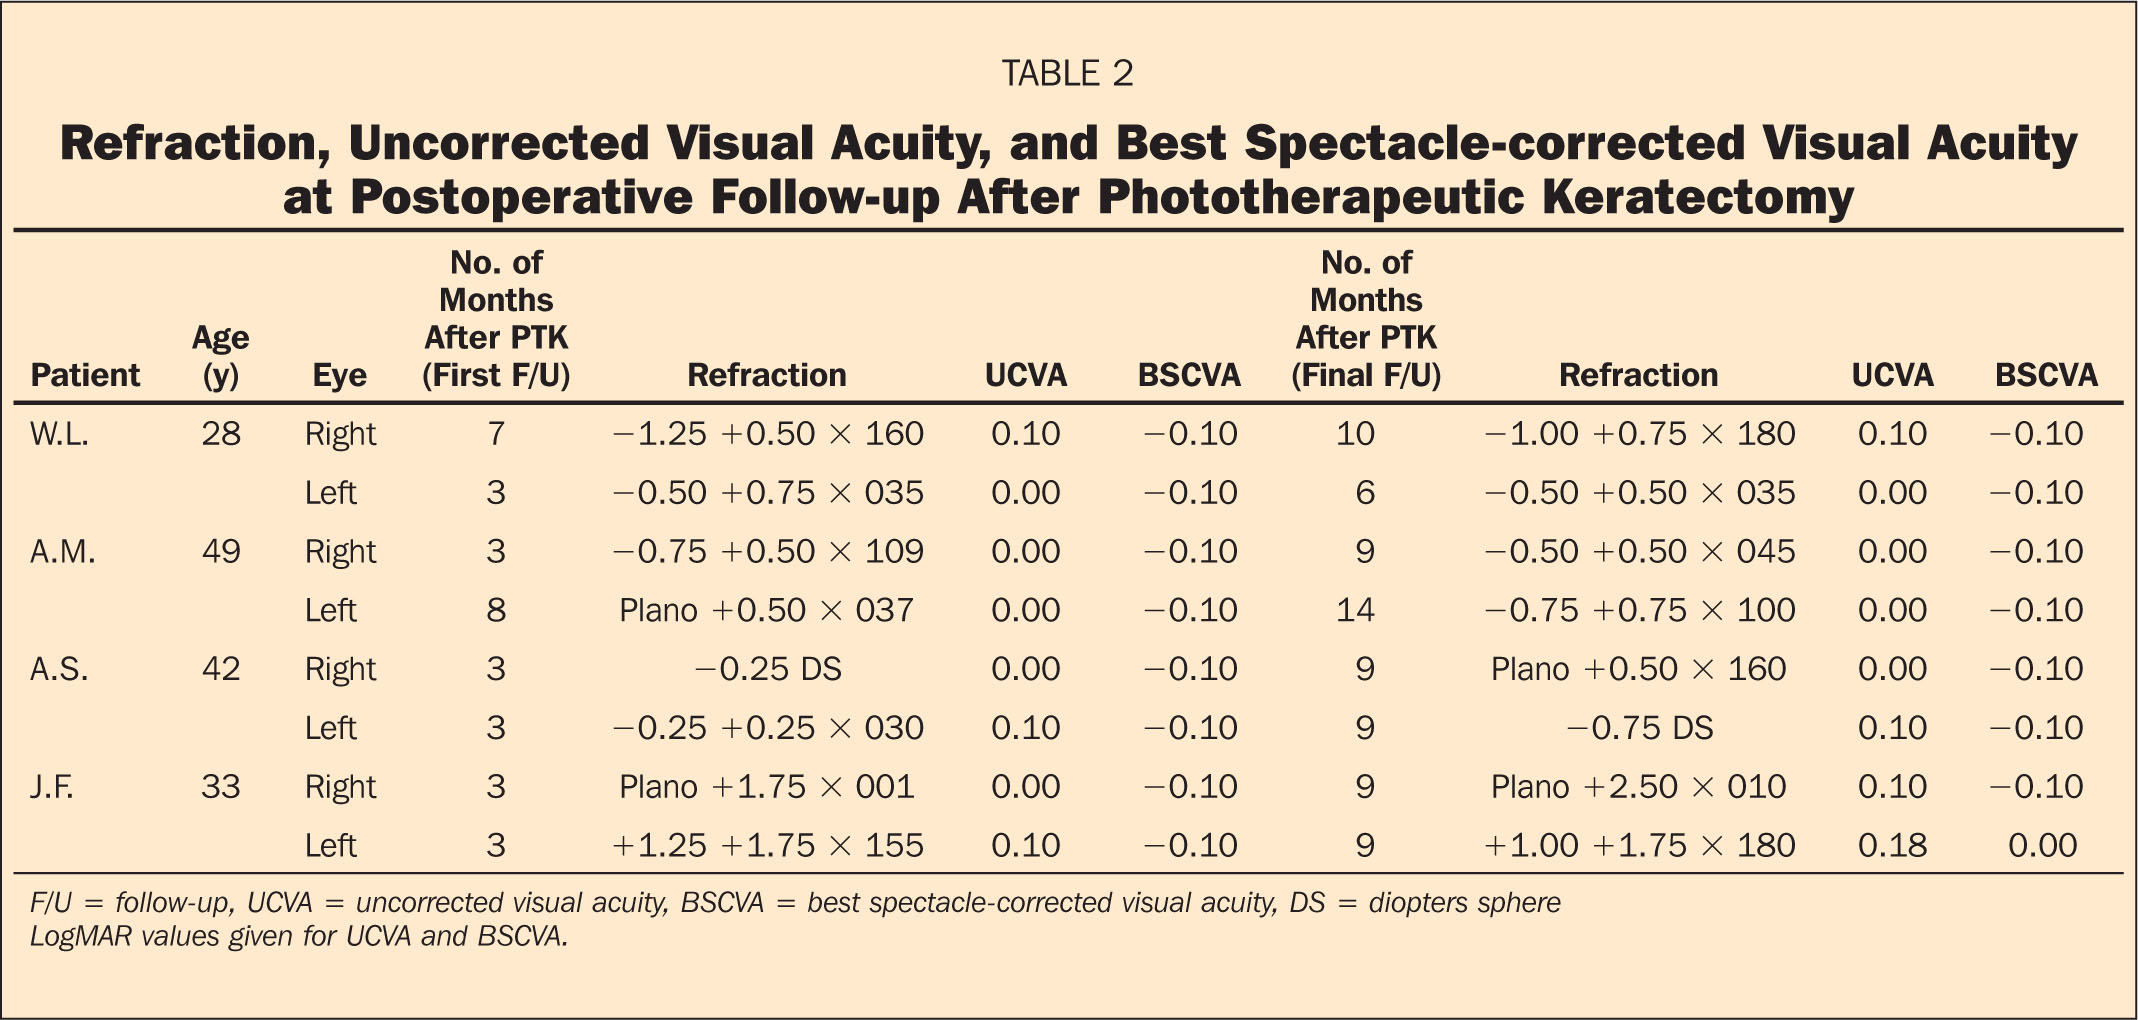 Refraction, Uncorrected Visual Acuity, and Best Spectacle-Corrected Visual Acuity at Postoperative Follow-Up After Phototherapeutic Keratectomy